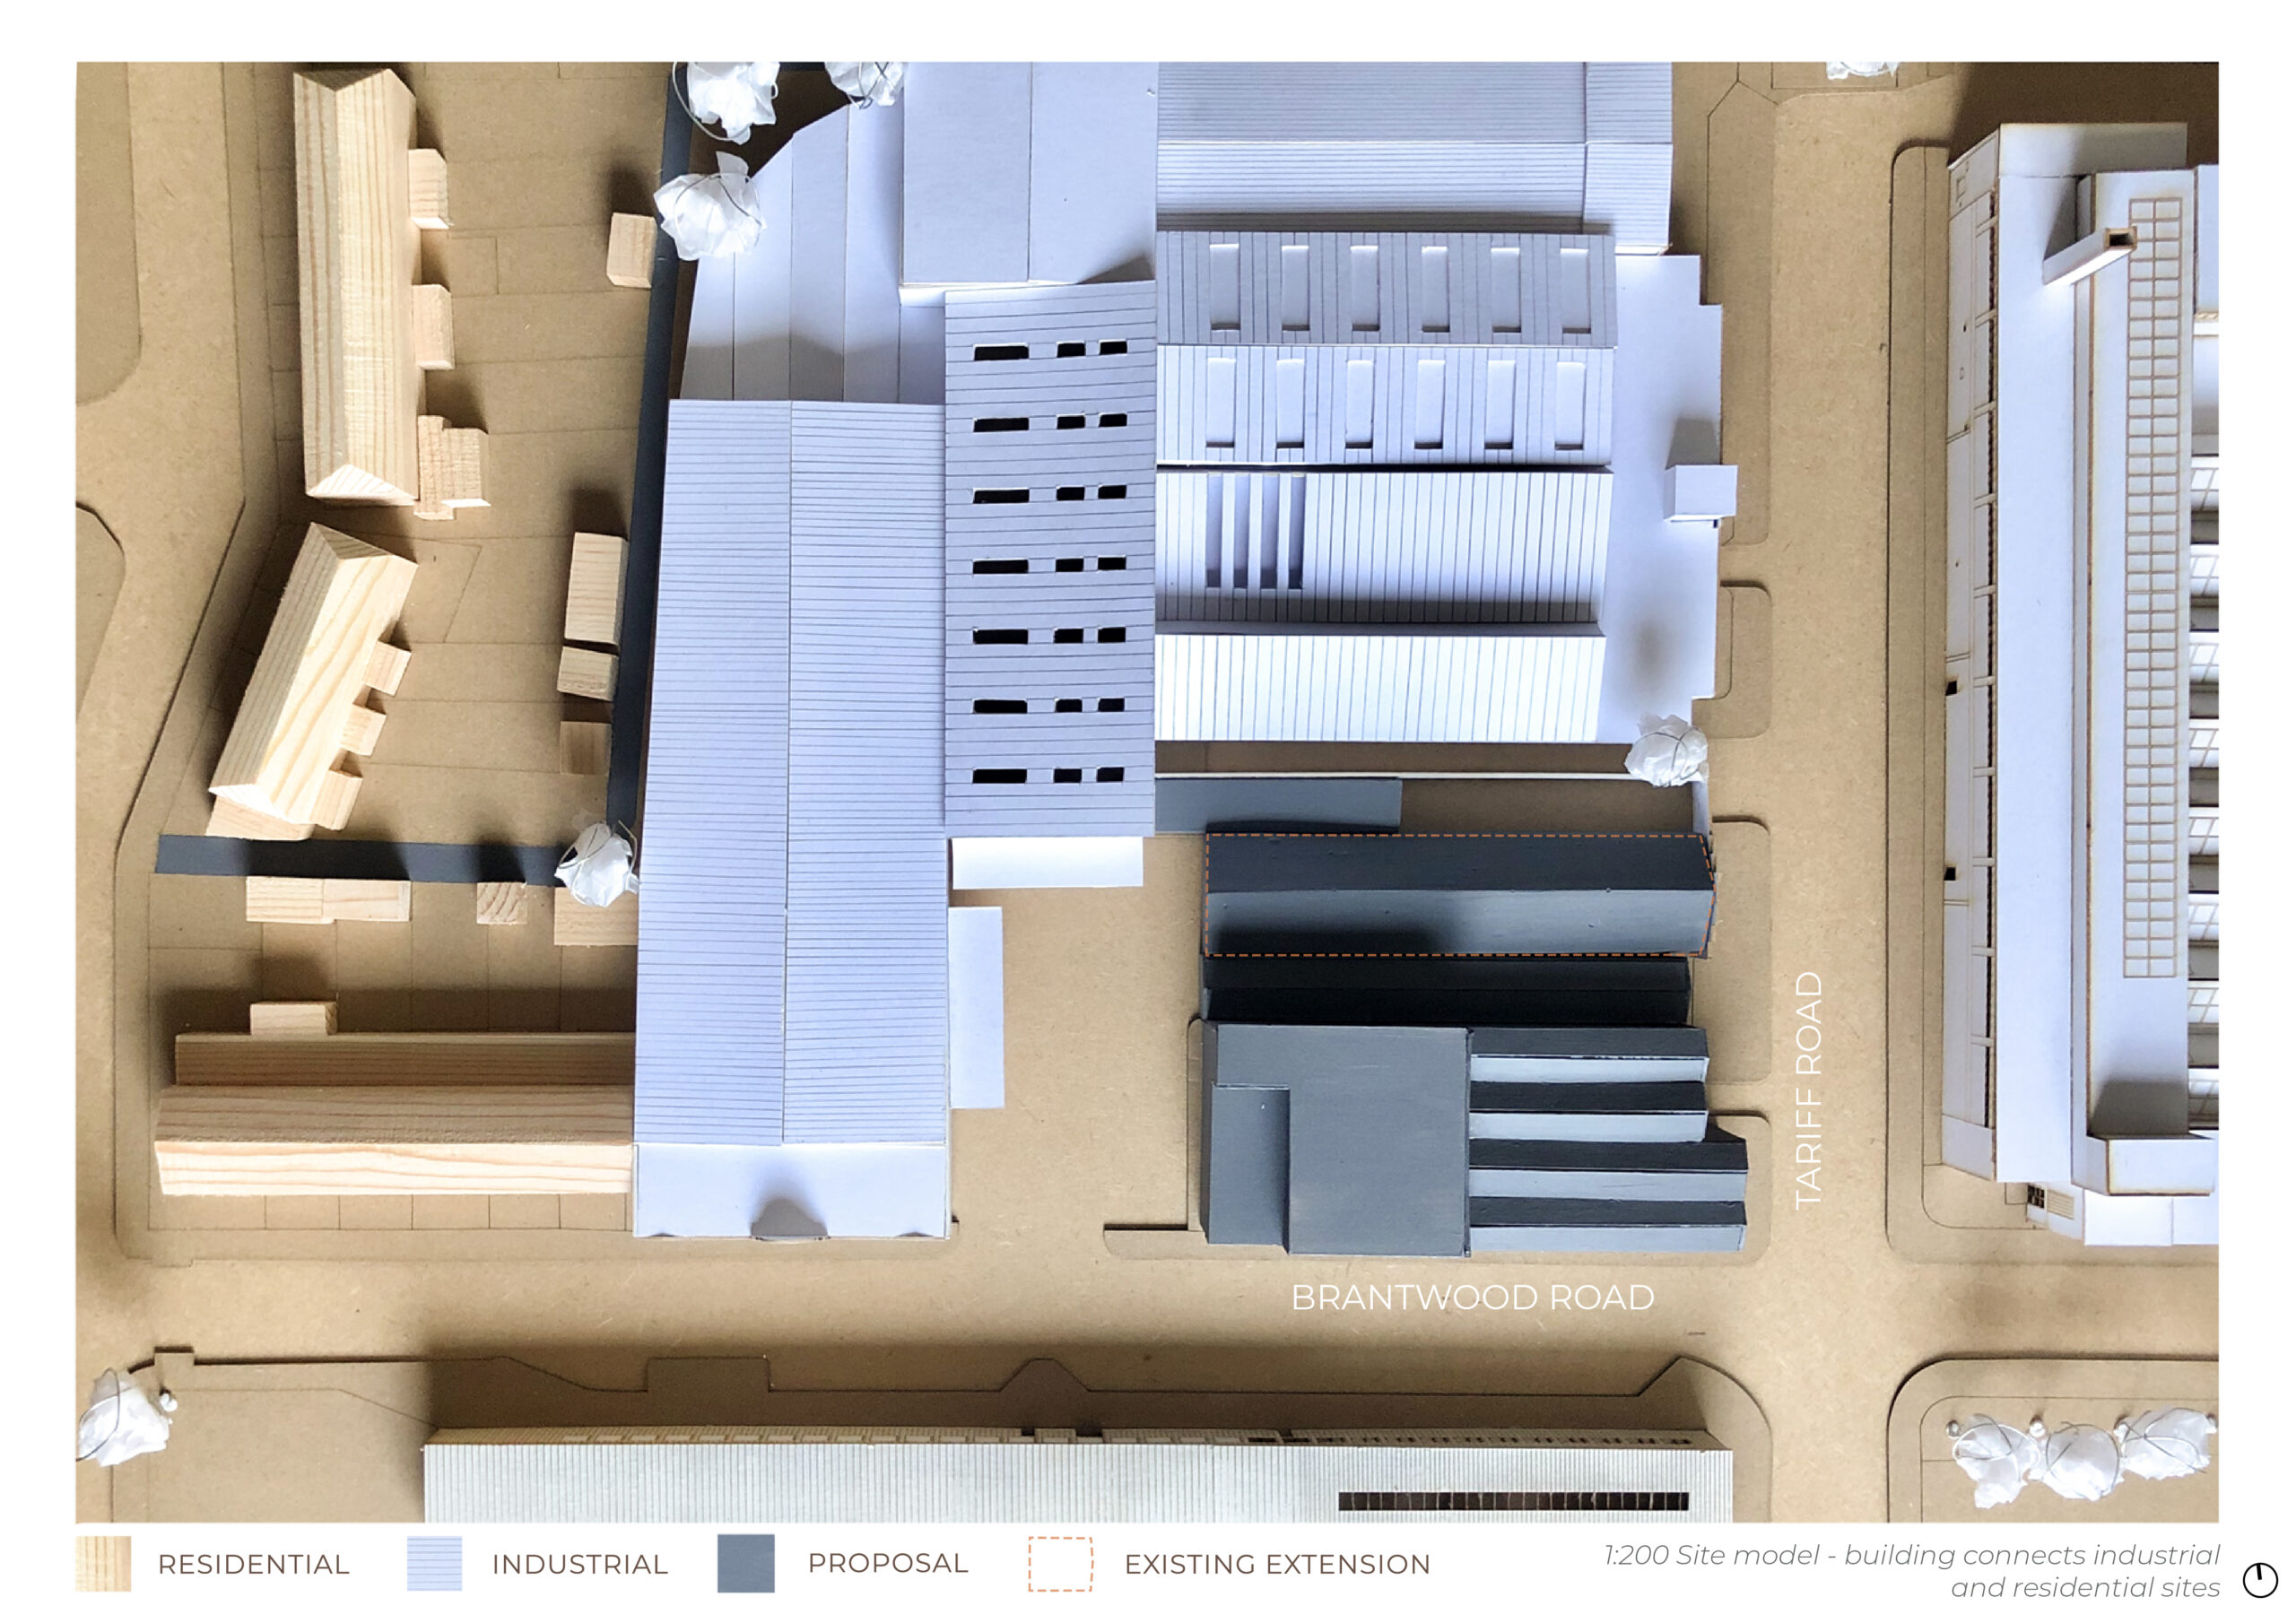 massing model showing the existing industrial buildings in white and the new leatherworks in black. The base is MDF